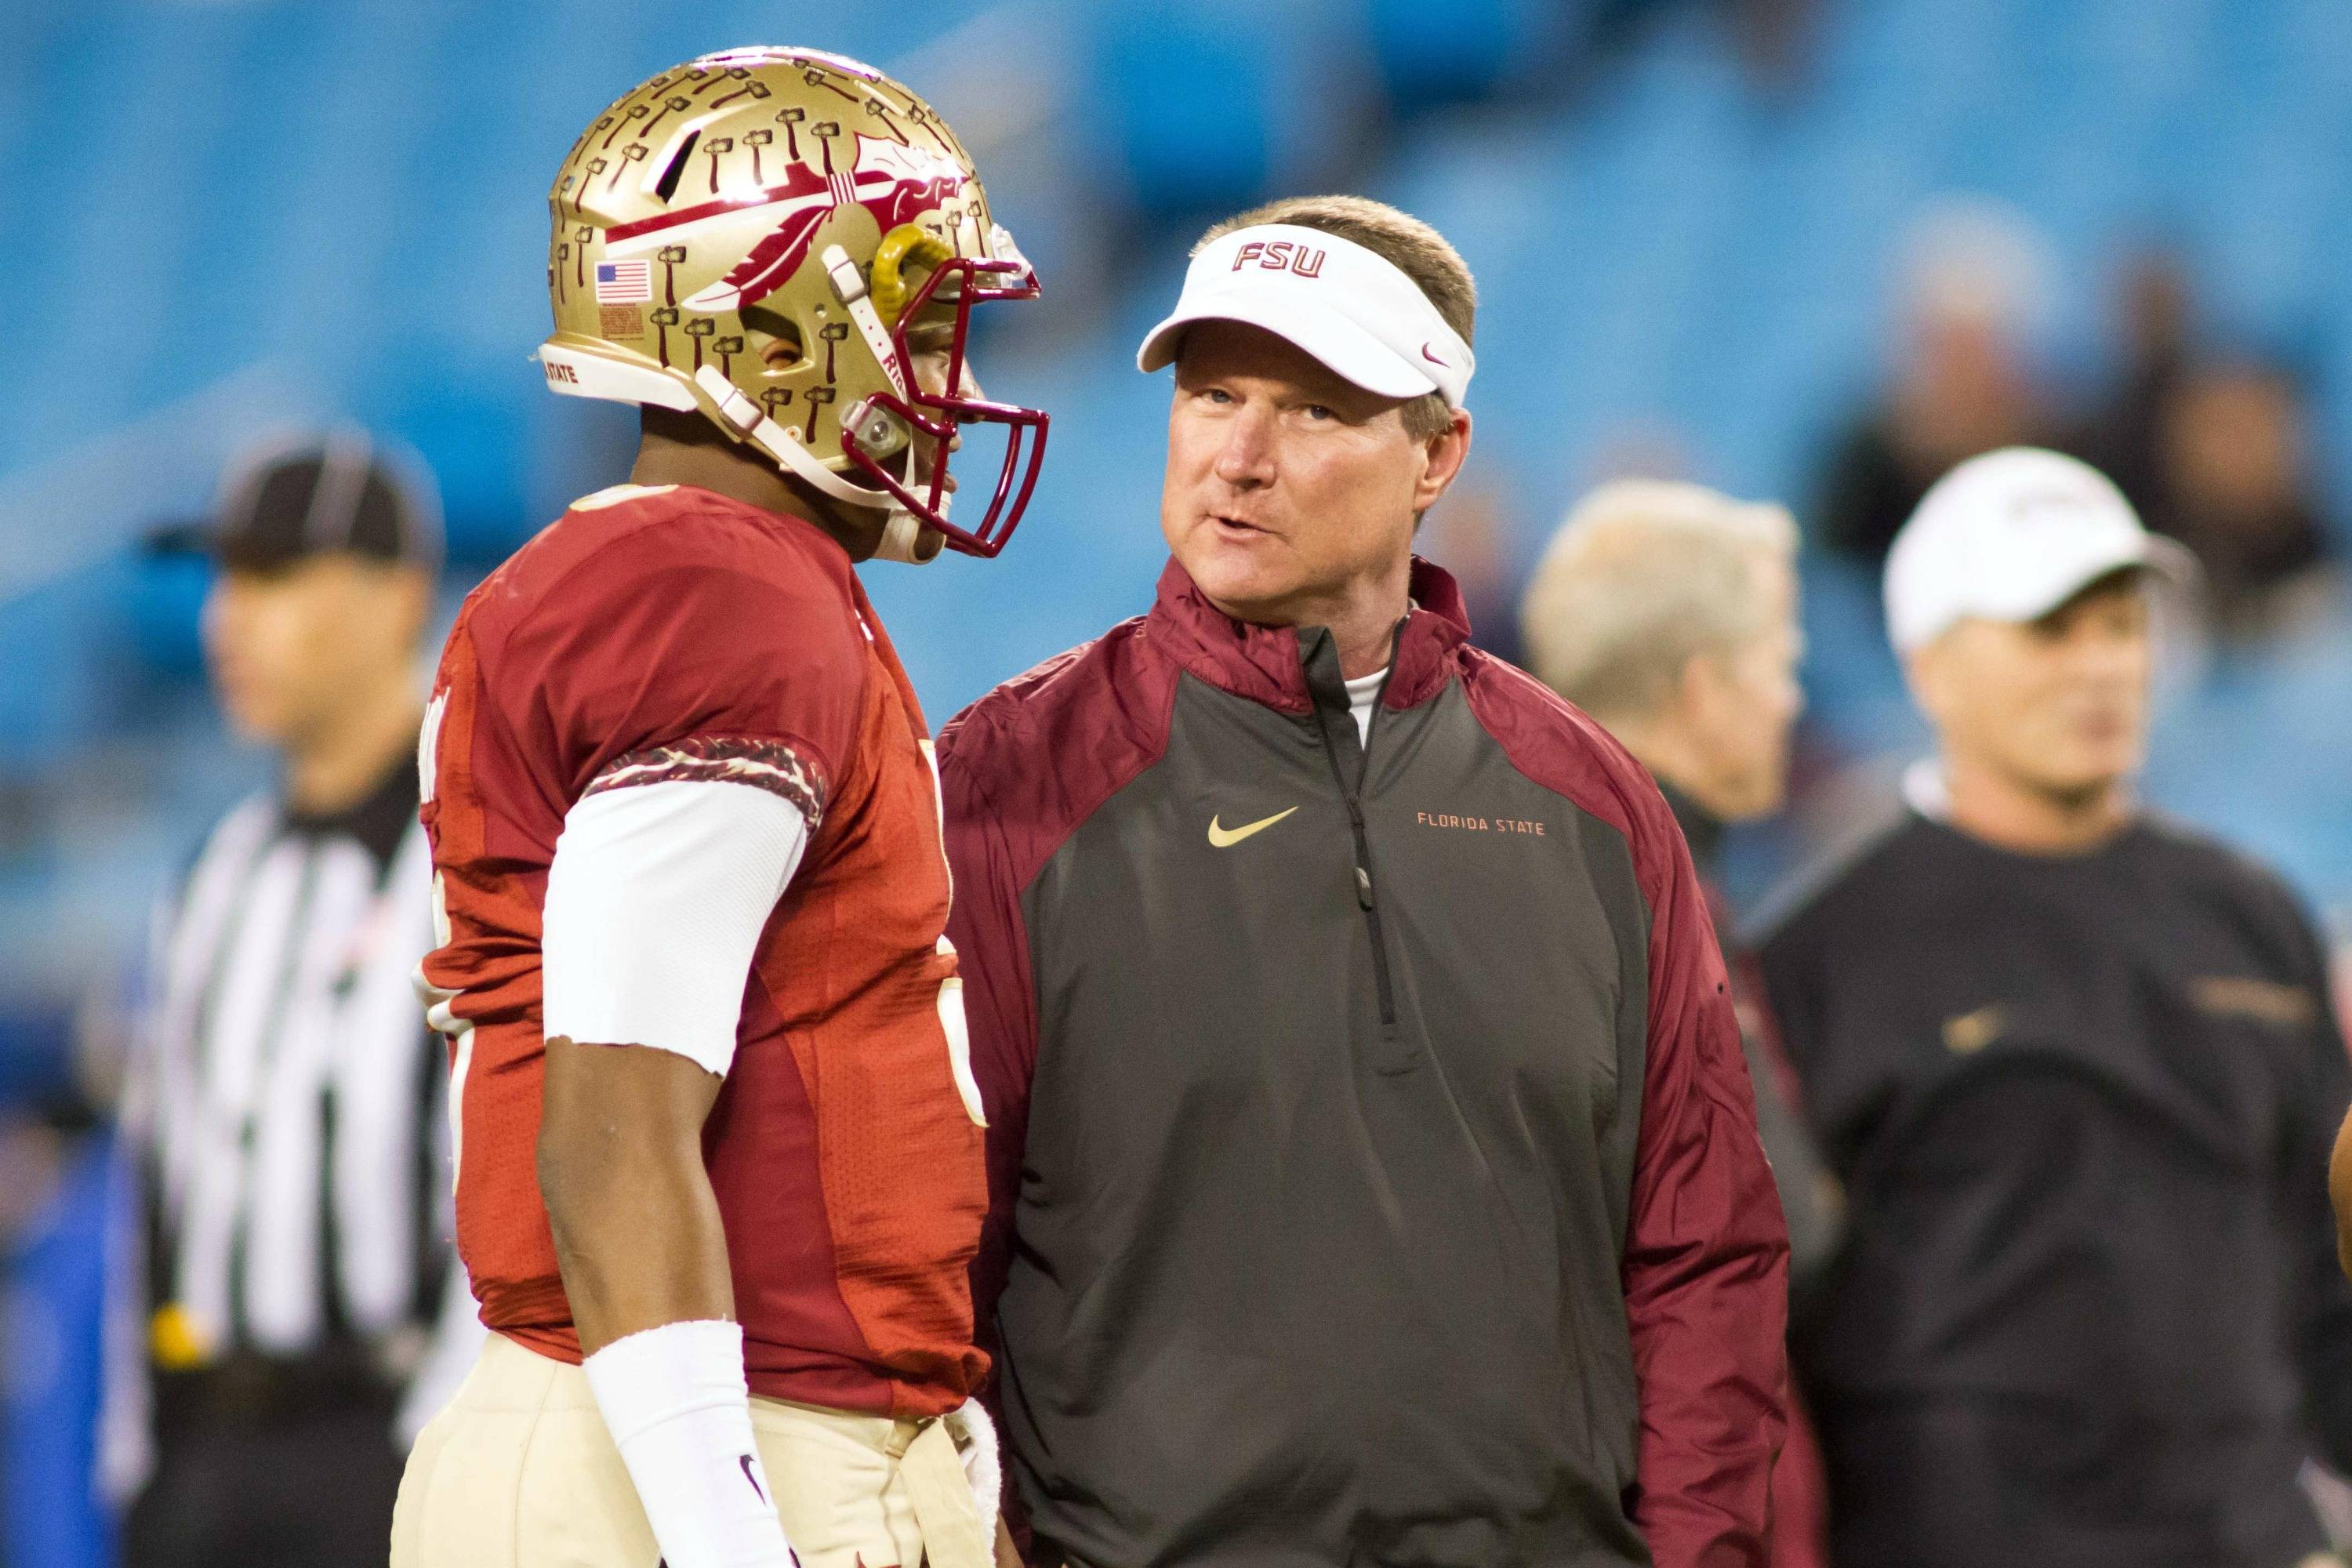 Dec 7, 2013; Charlotte, NC, USA; Florida State Seminoles quarterback Jameis Winston (5) talks with quarterback coach Randy Sanders before the start of the game against the Duke Blue Devils at Bank of America Stadium. Mandatory Credit: Jeremy Brevard-USA TODAY Sports